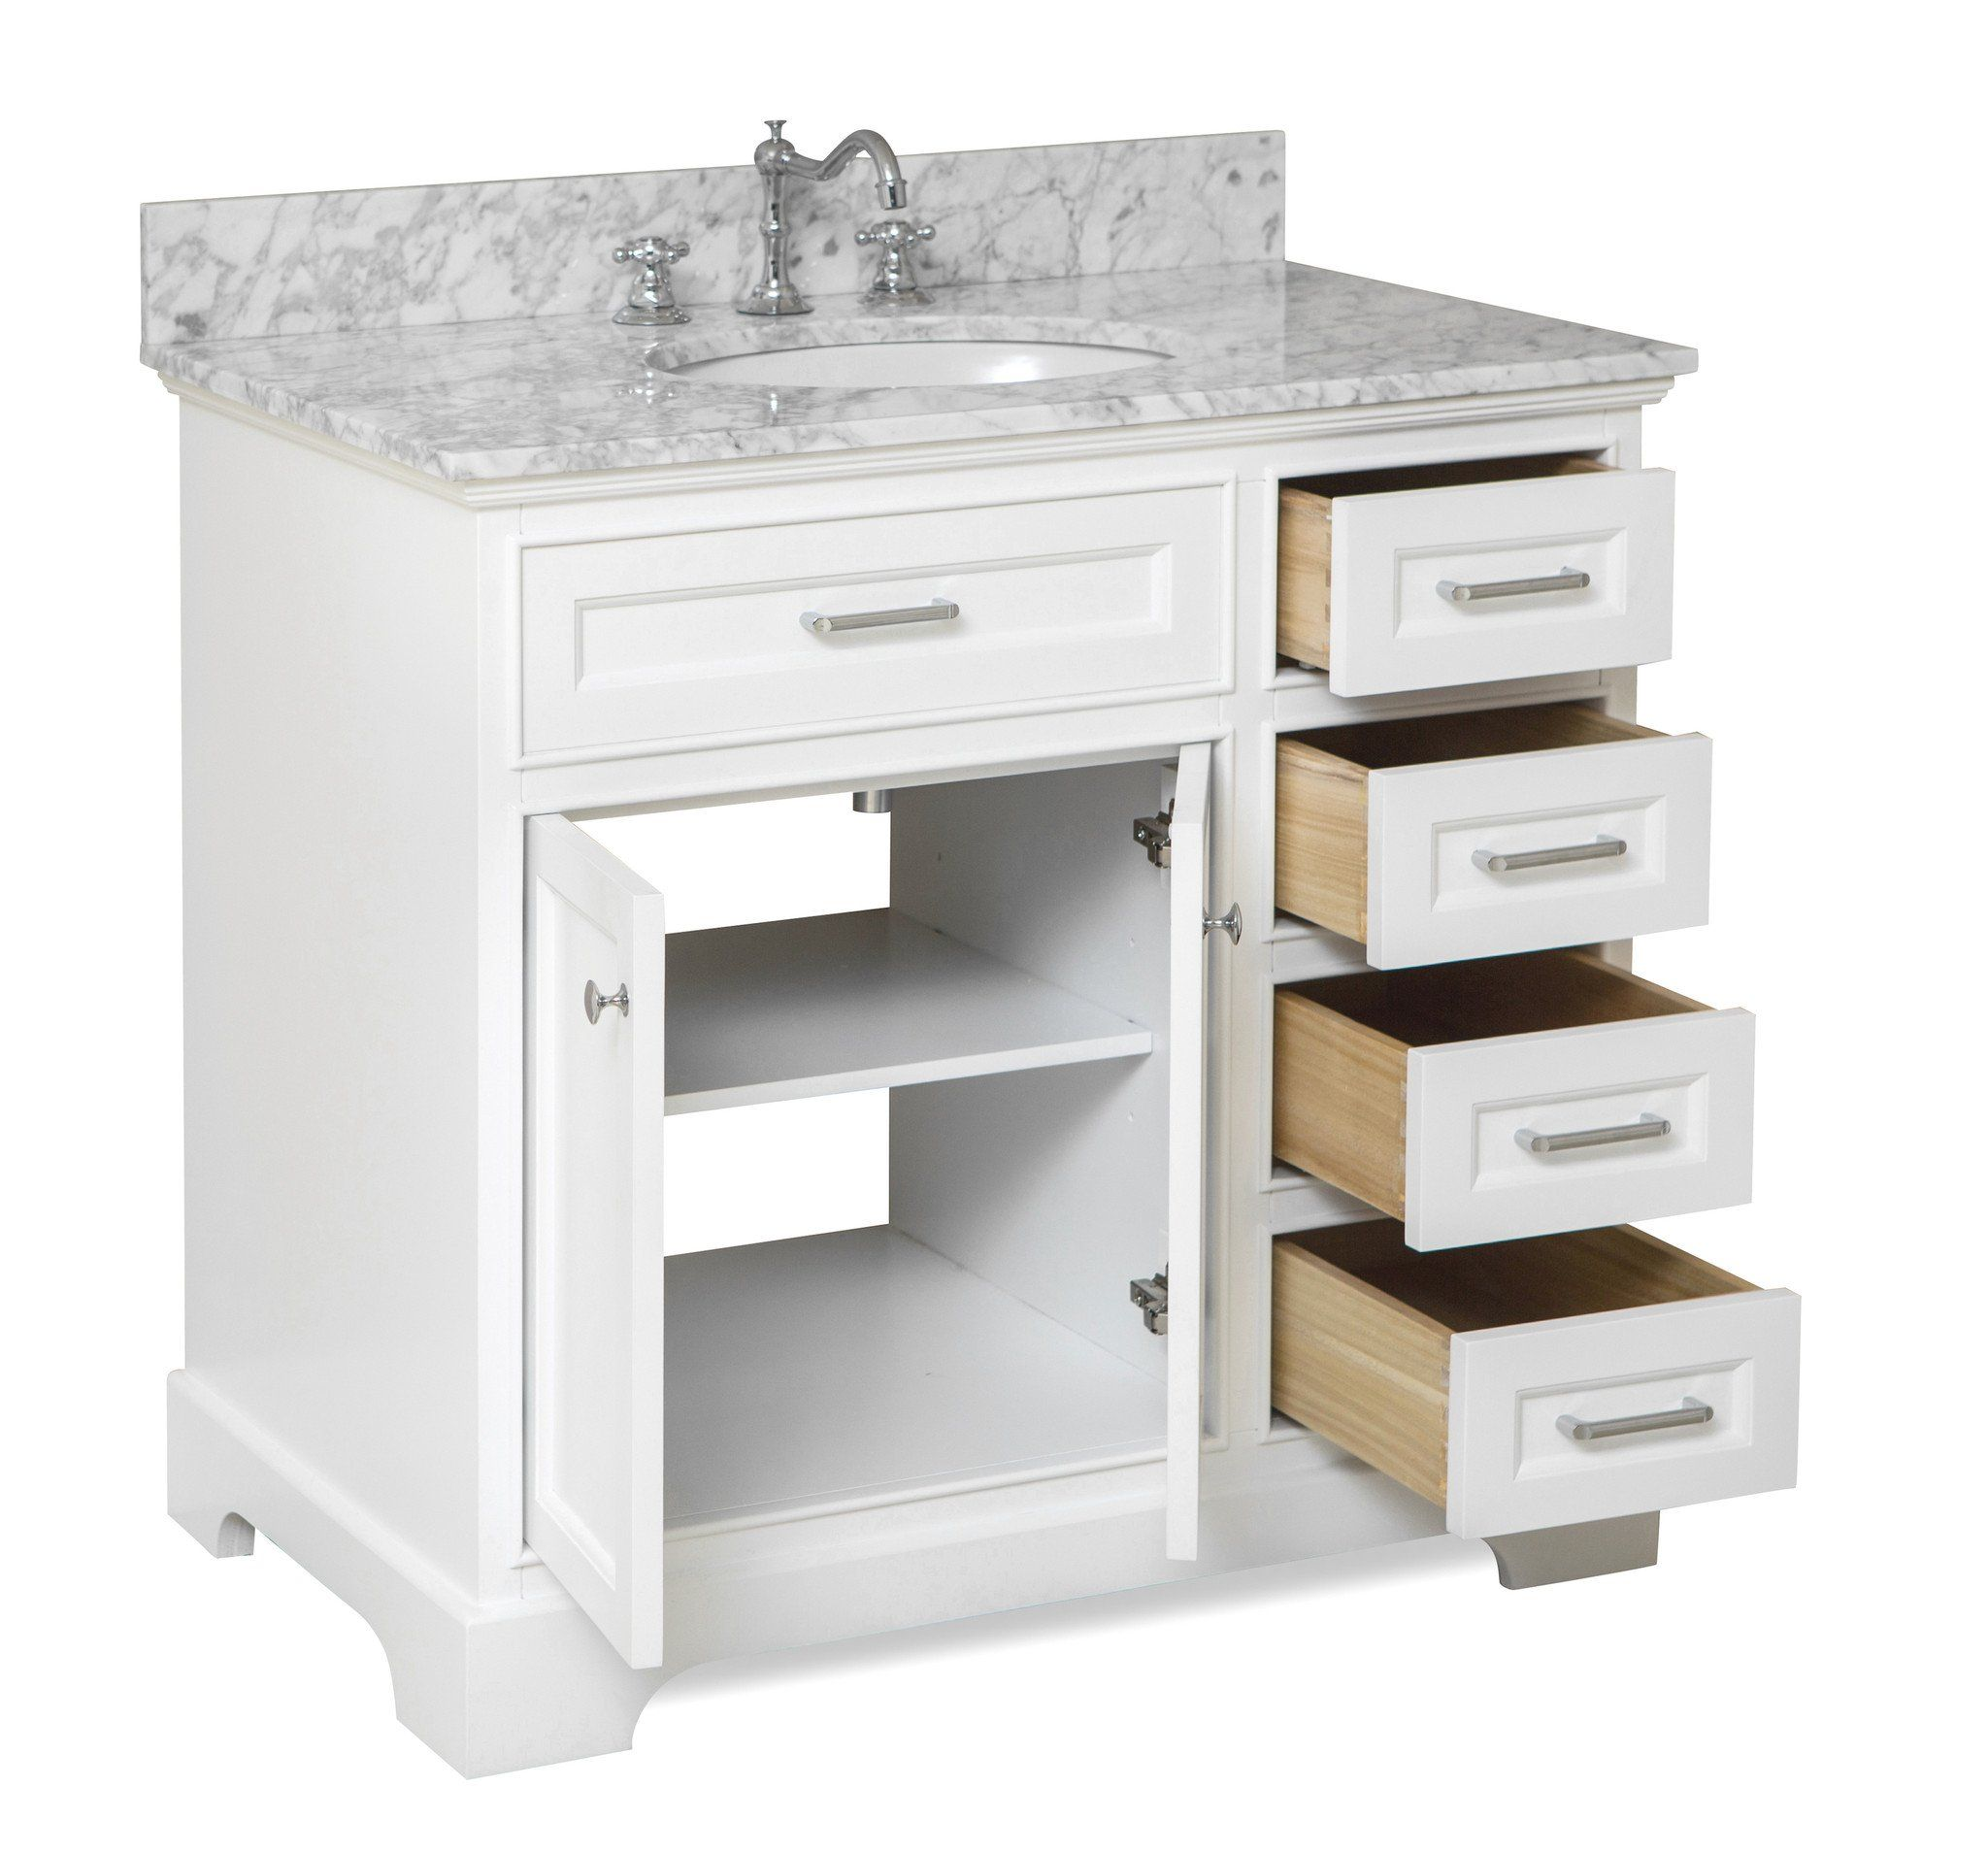 Aria 36 Inch Vanity With Carrara Marble Top Single Bathroom Vanity Bathroom Vanity 36 Inch Vanity